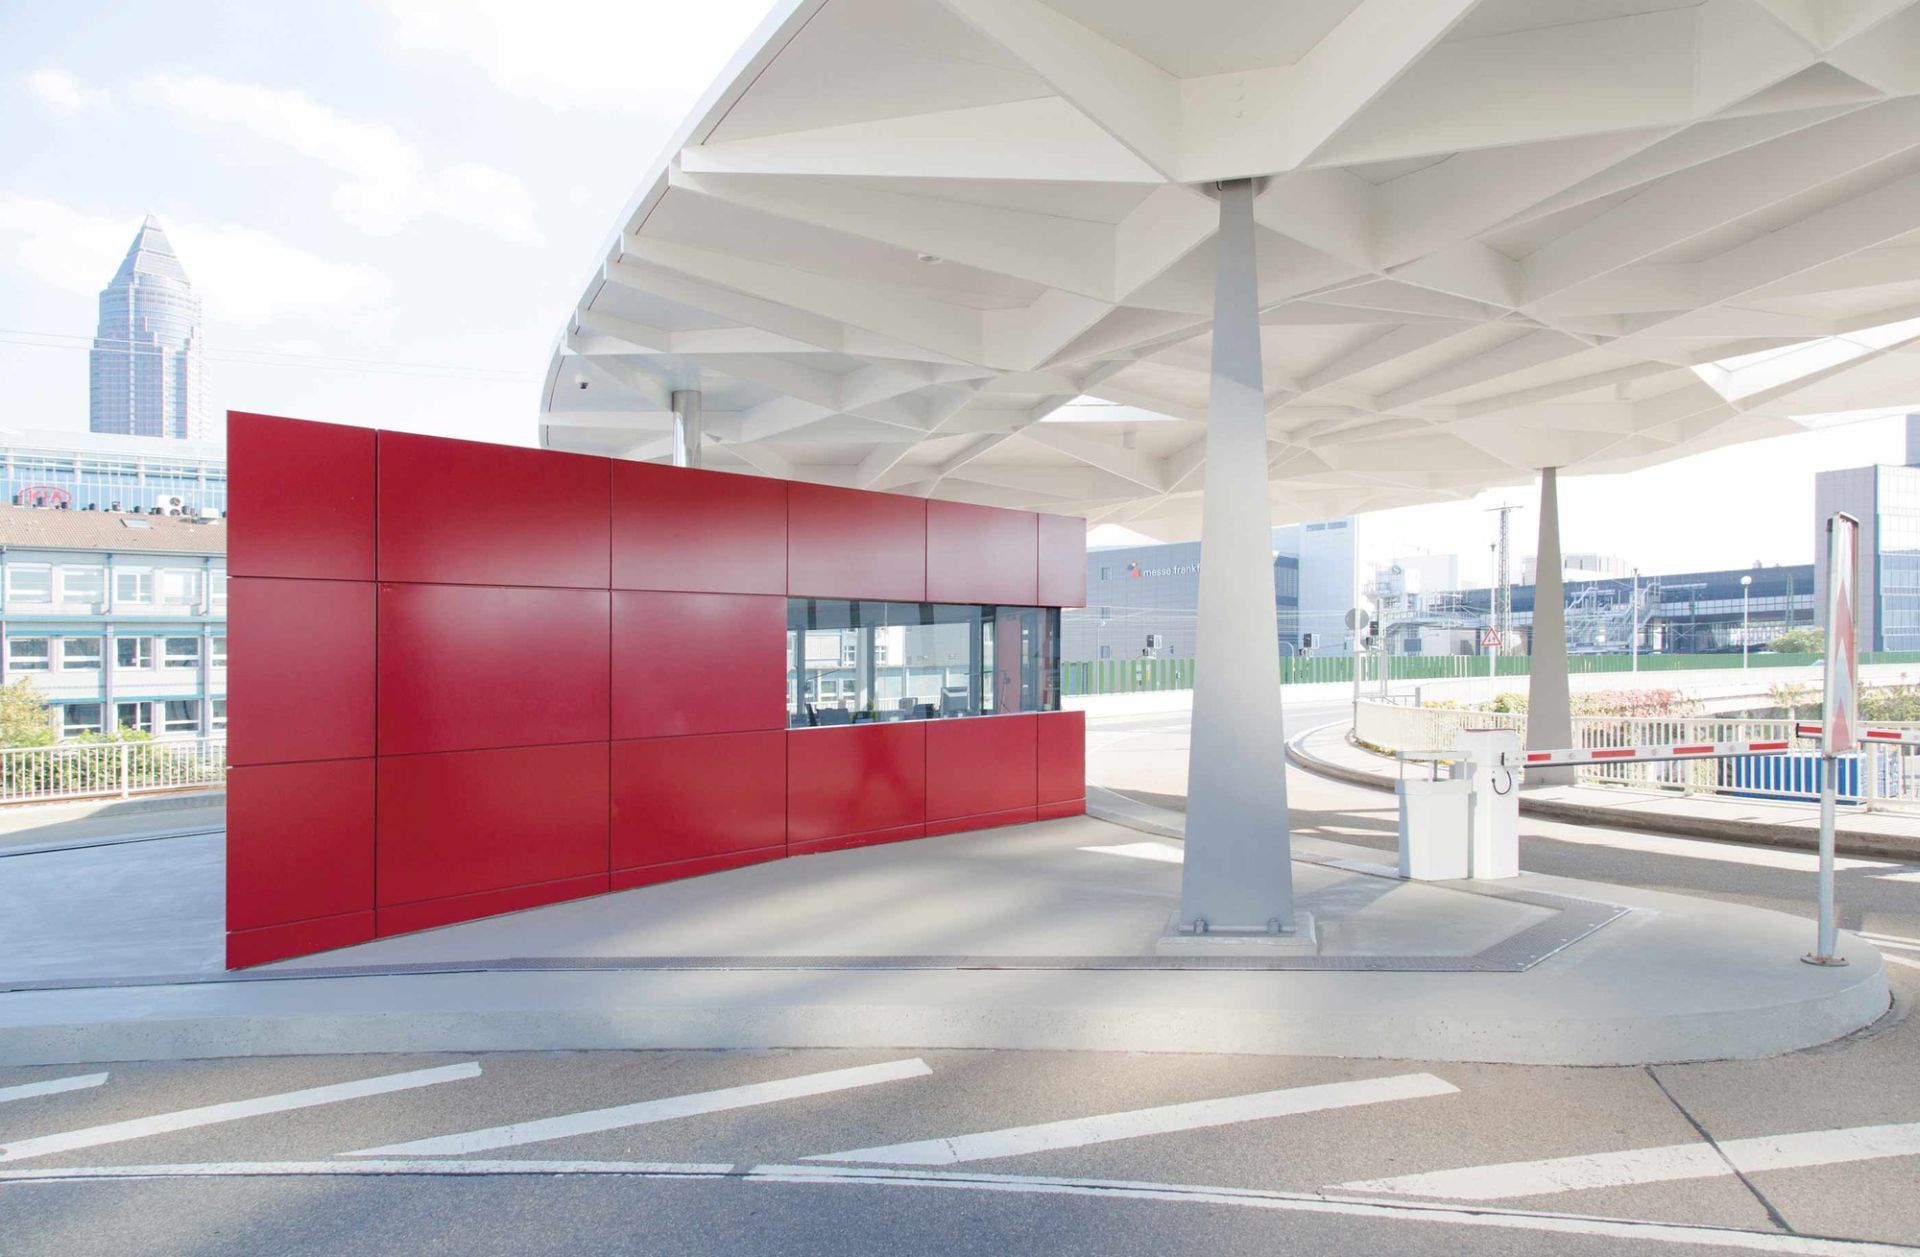 MesseFrankfurt_NorthEntrance_Ingo-Schrader_Archite